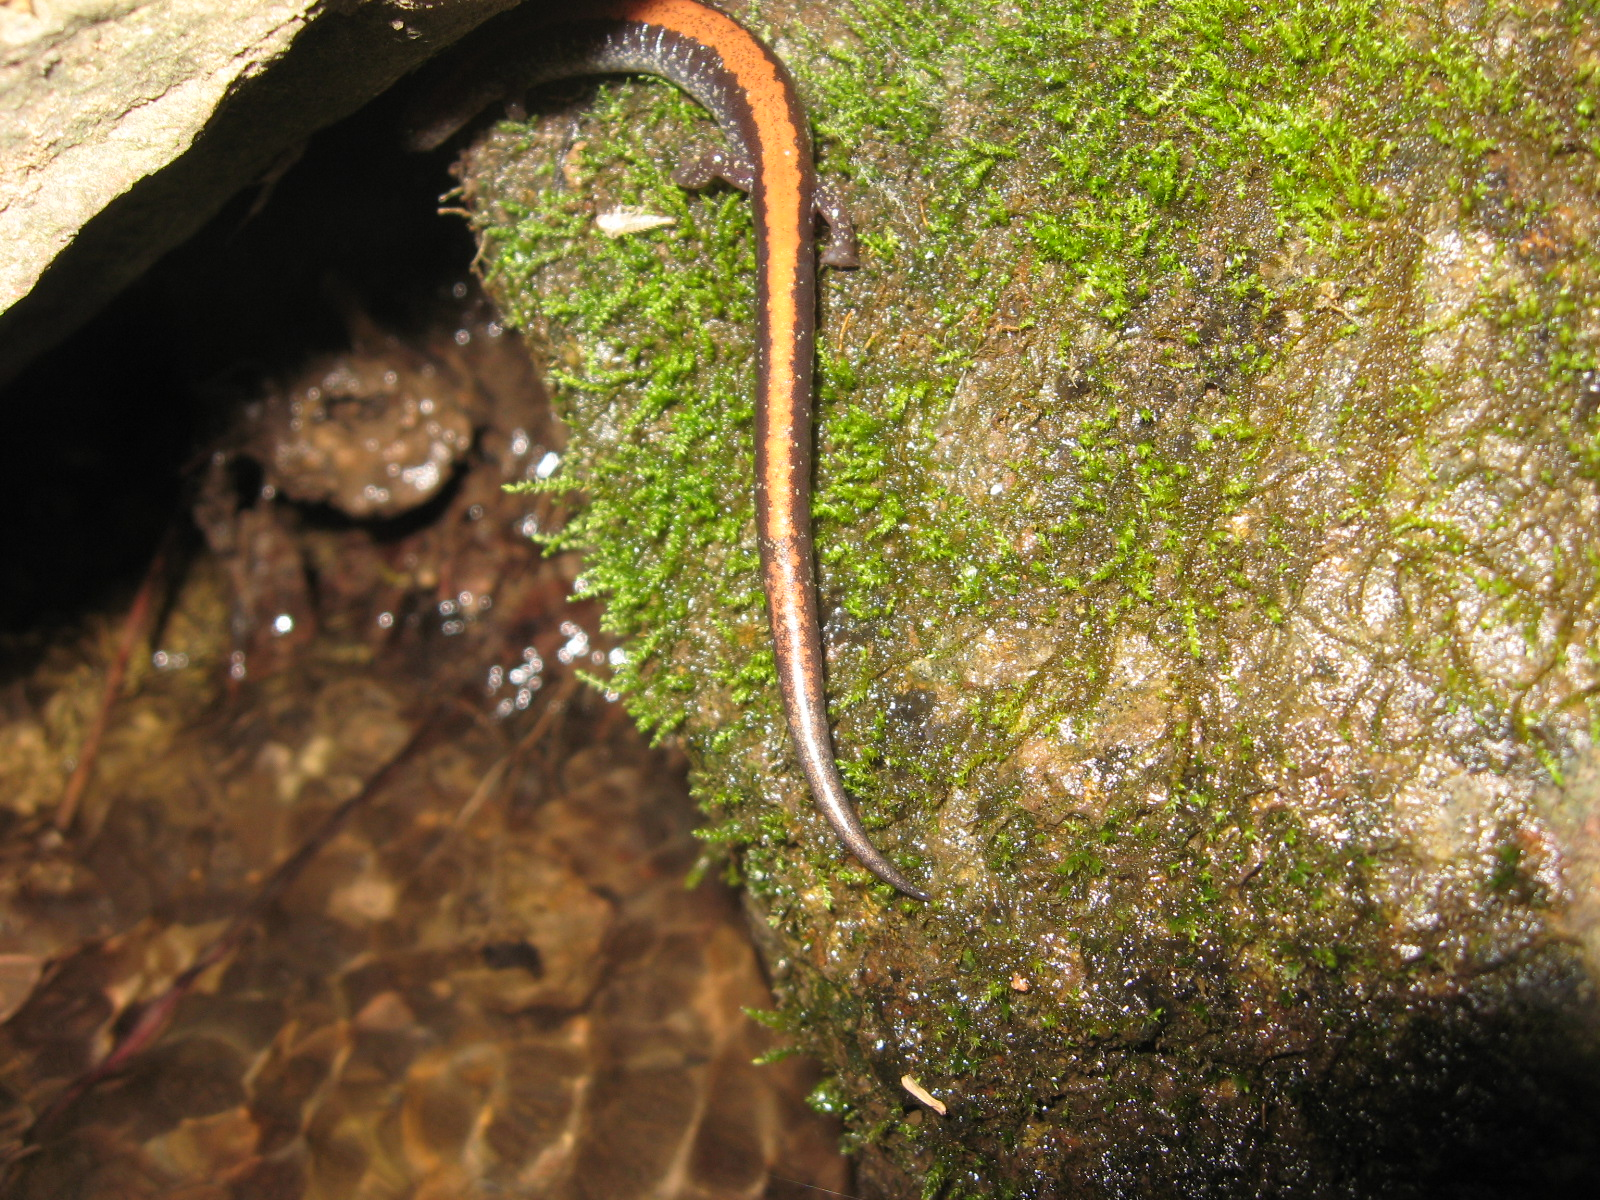 What kind of salamander is hiding under this rock?